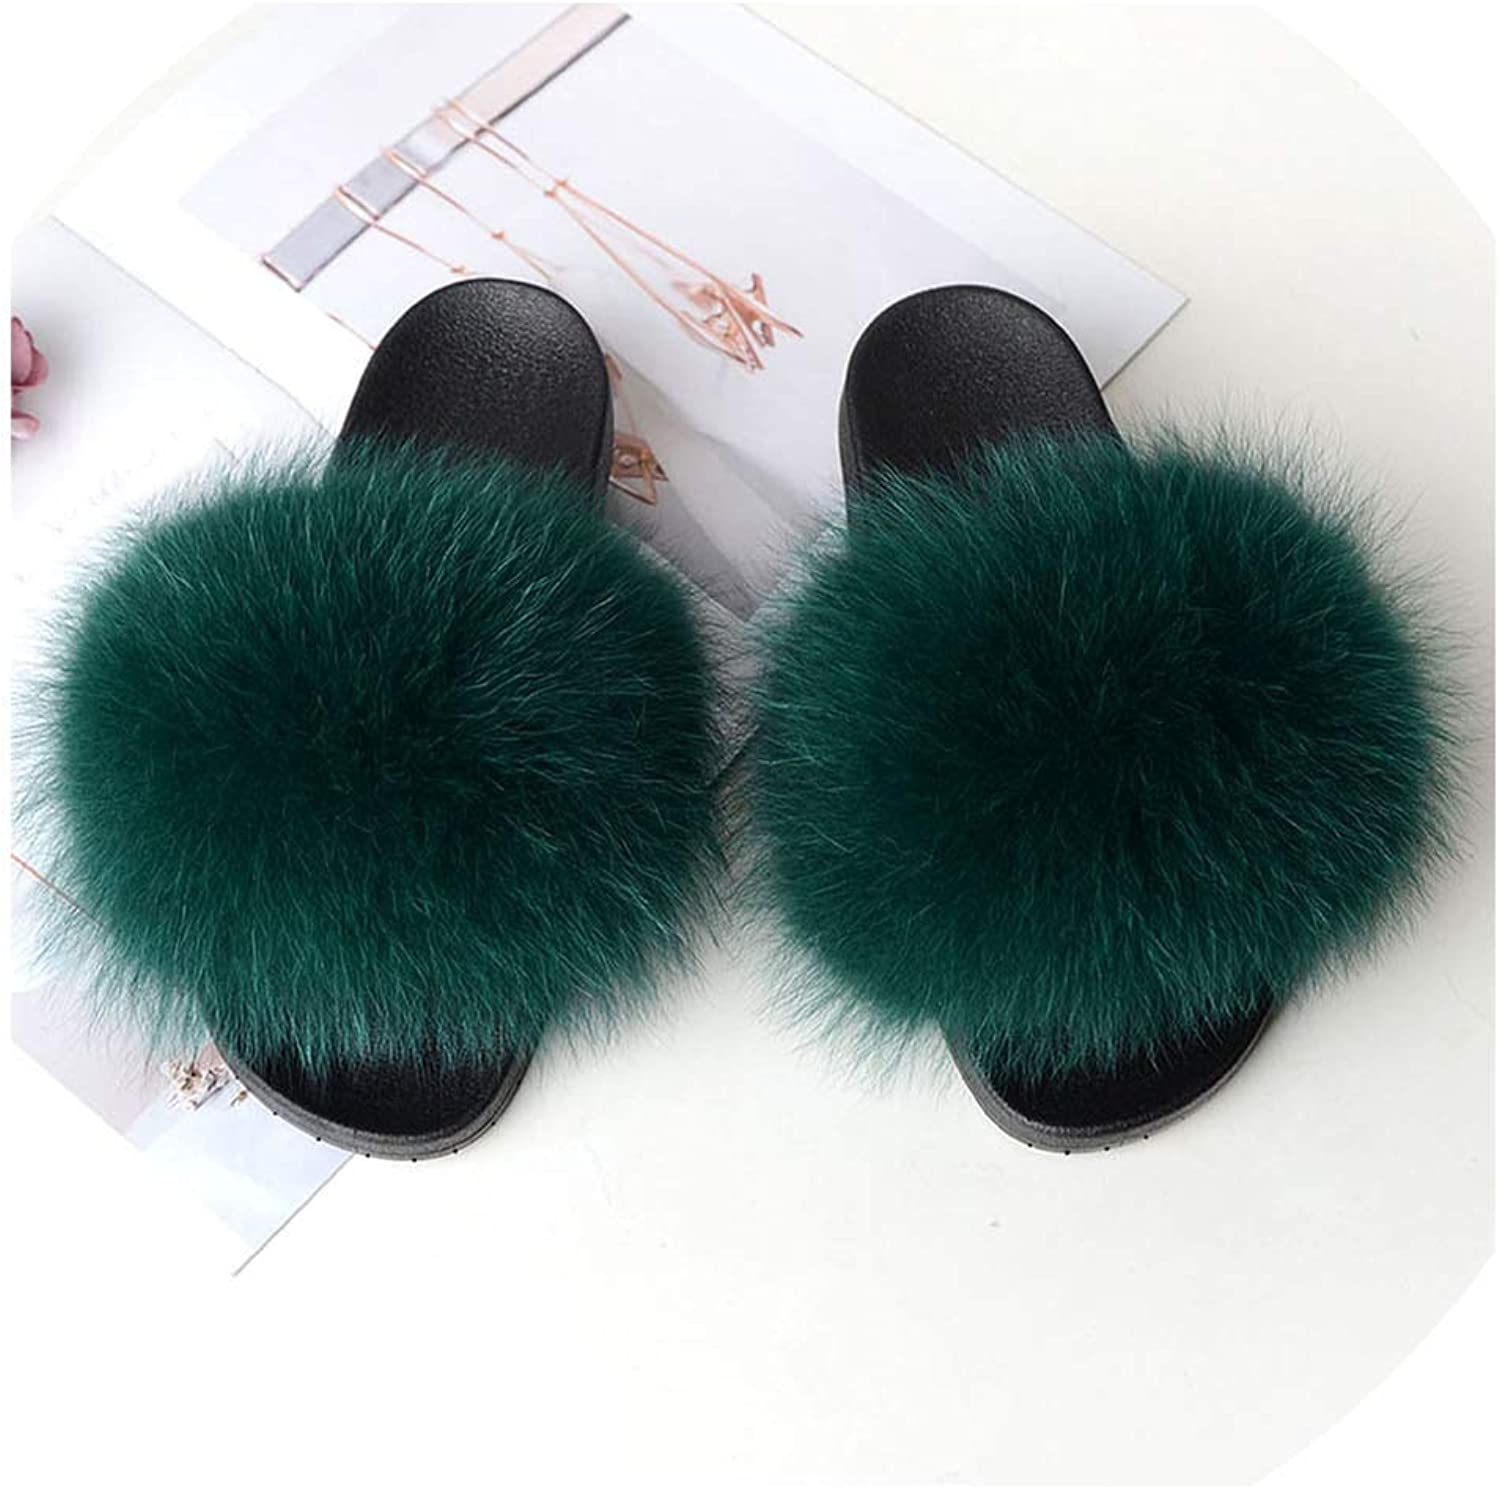 Real Fox Fur Slides Summer 2019 Open Toe Fluffy Real Hair Slipper Slip On Flip Flops Furry shoes,20,131